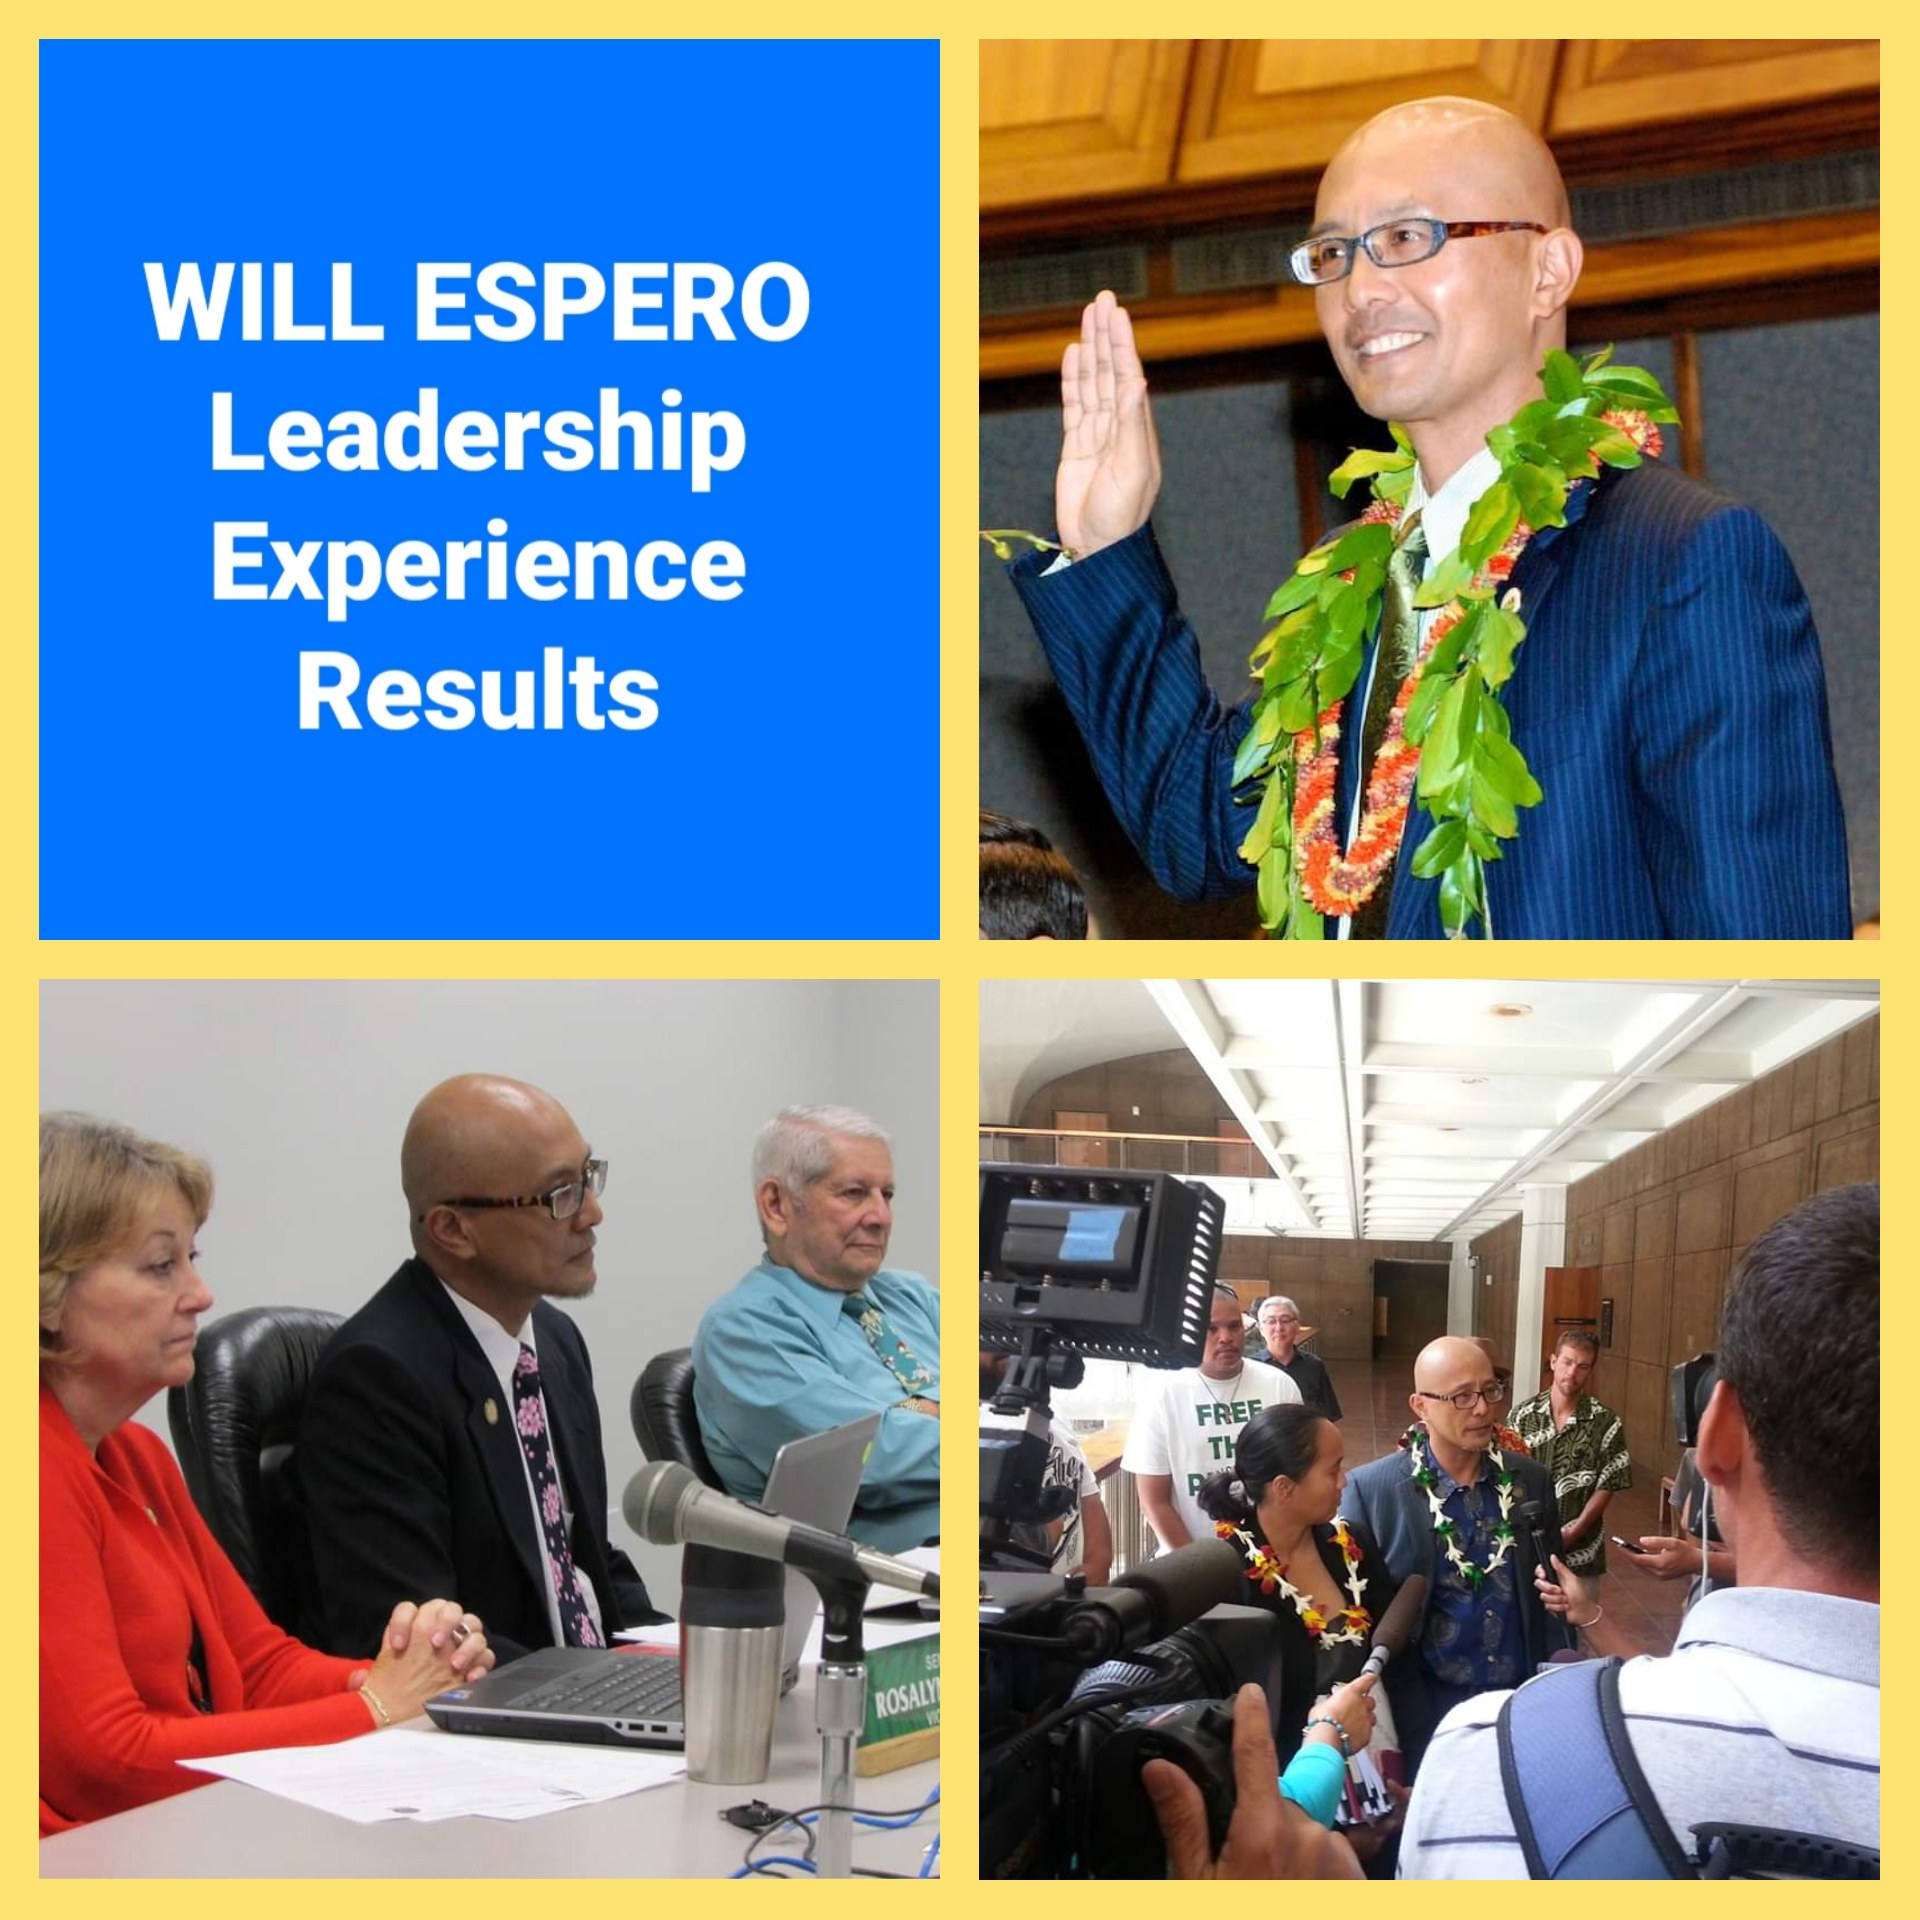 Senator Will Espero is one of the few brave politicians who are willing to ask the tough questions and execute on policies when law enforcement misbehaves.